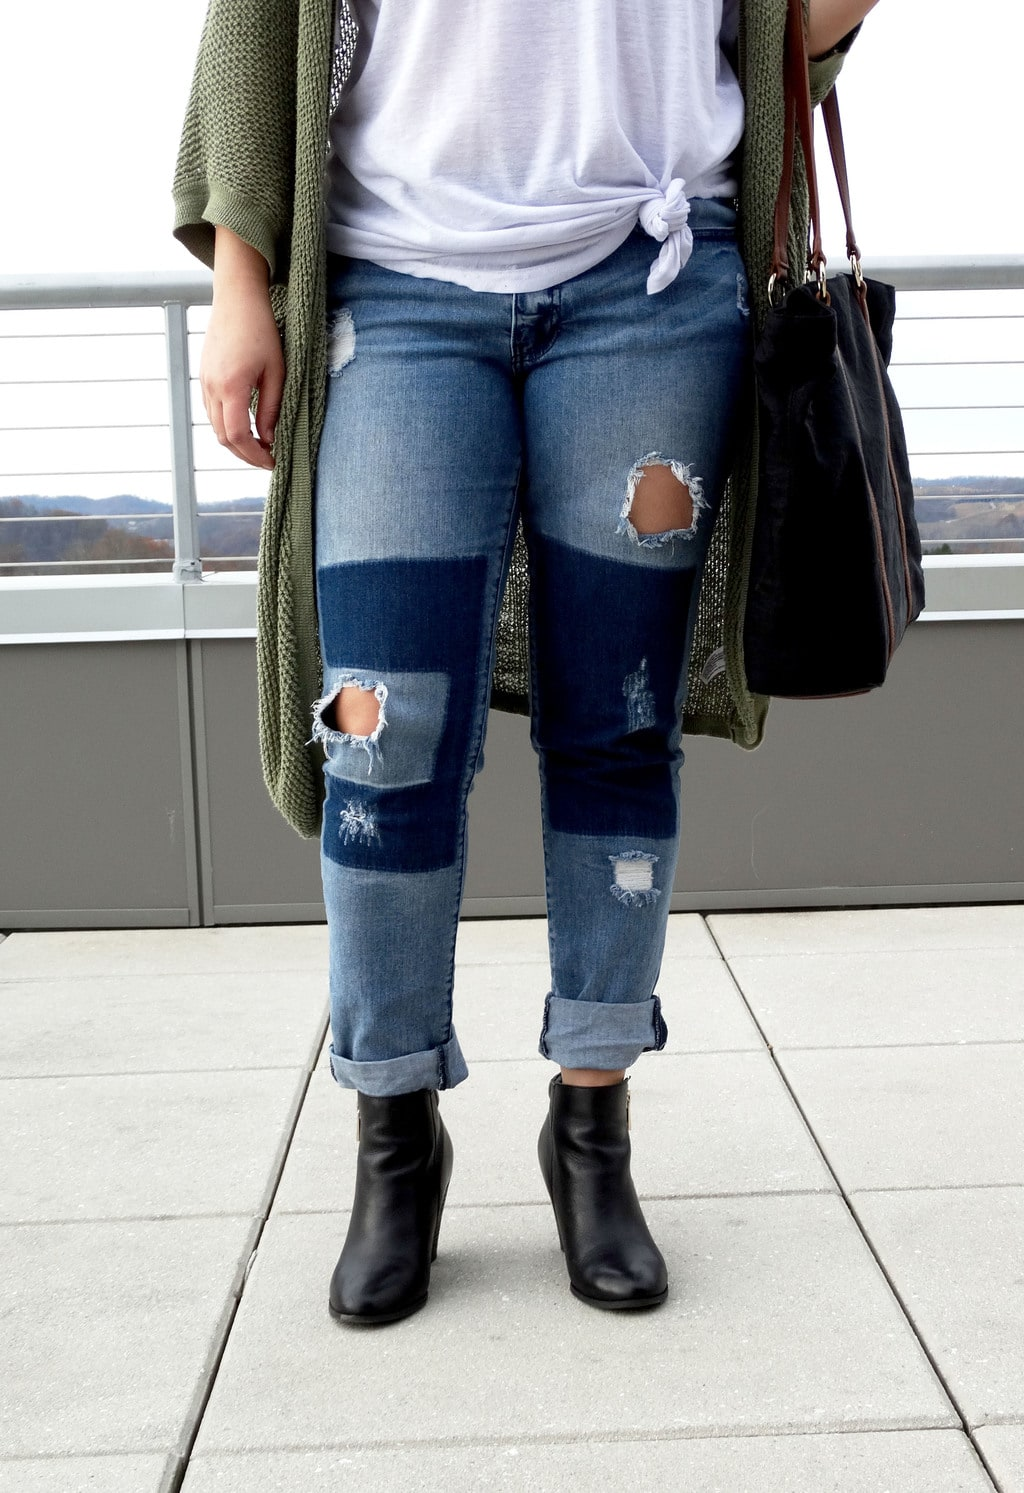 West Virginia University student Mel wears distressed patchwork boyfriend jeans cuffed to show off her chunky black booties.